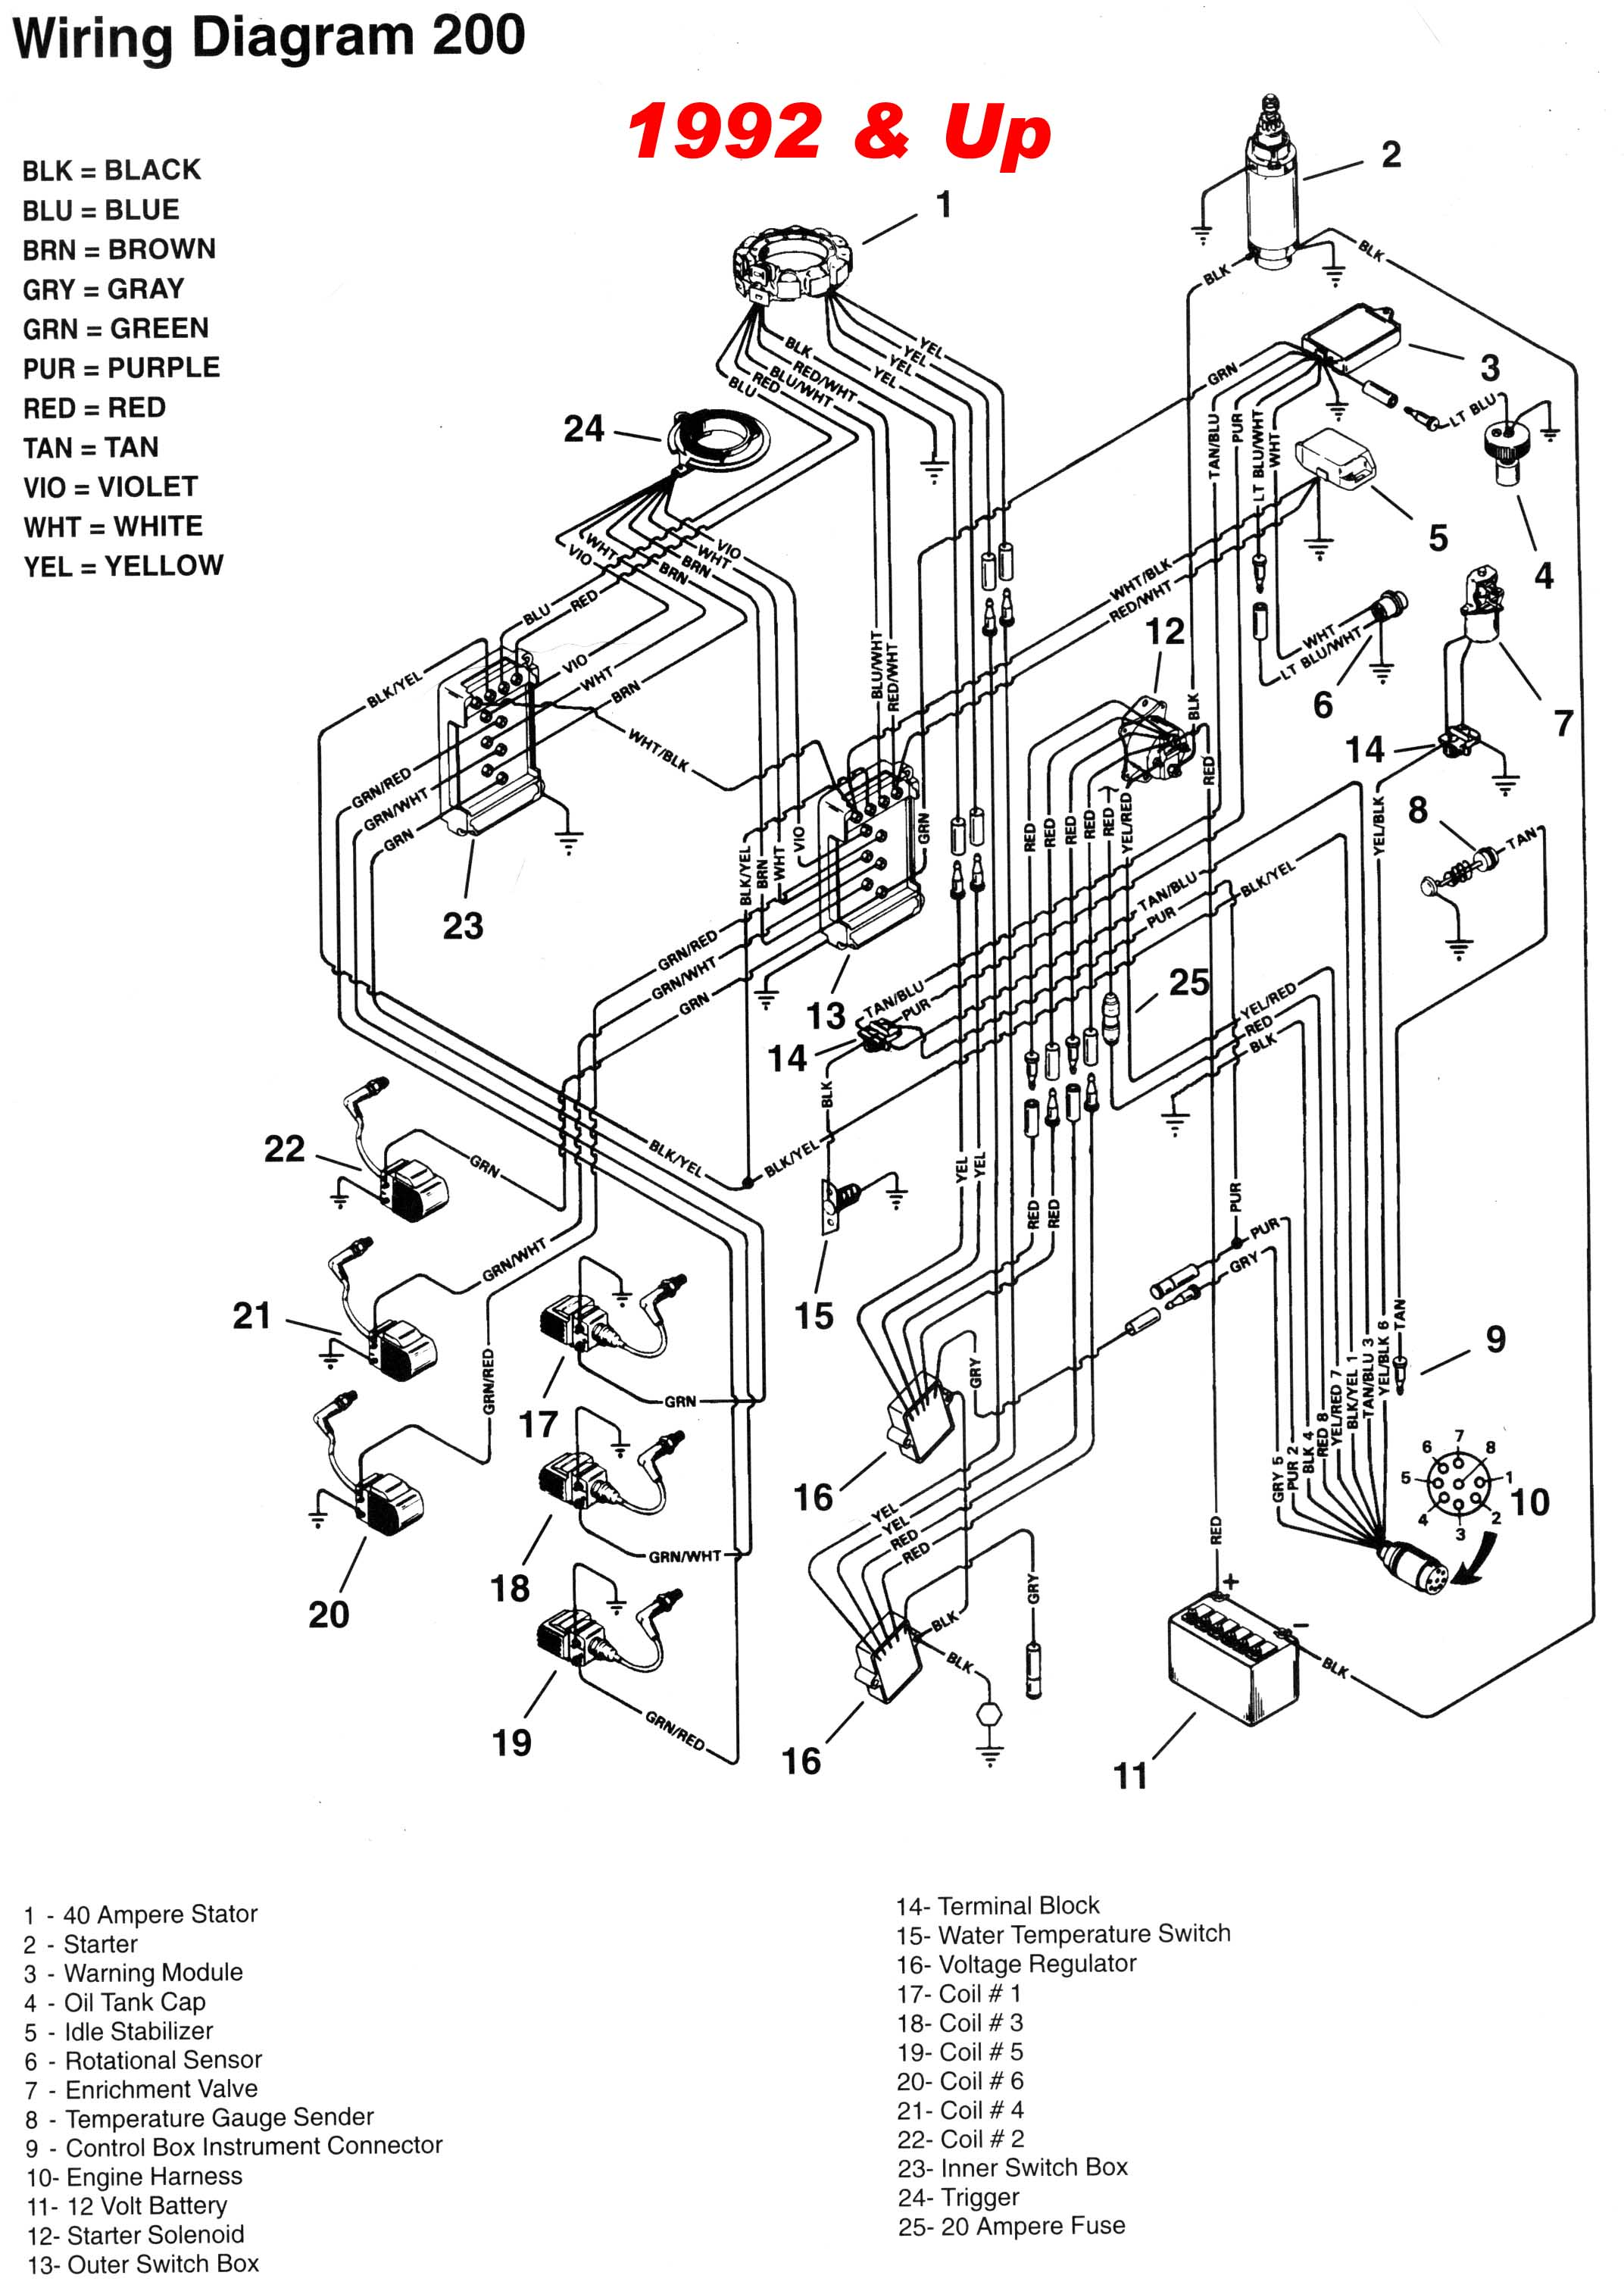 mercury_92up_200_wiring mercury cruiser outboard wiring diagram on mercury download mercruiser 3.0 ignition wiring diagram at fashall.co